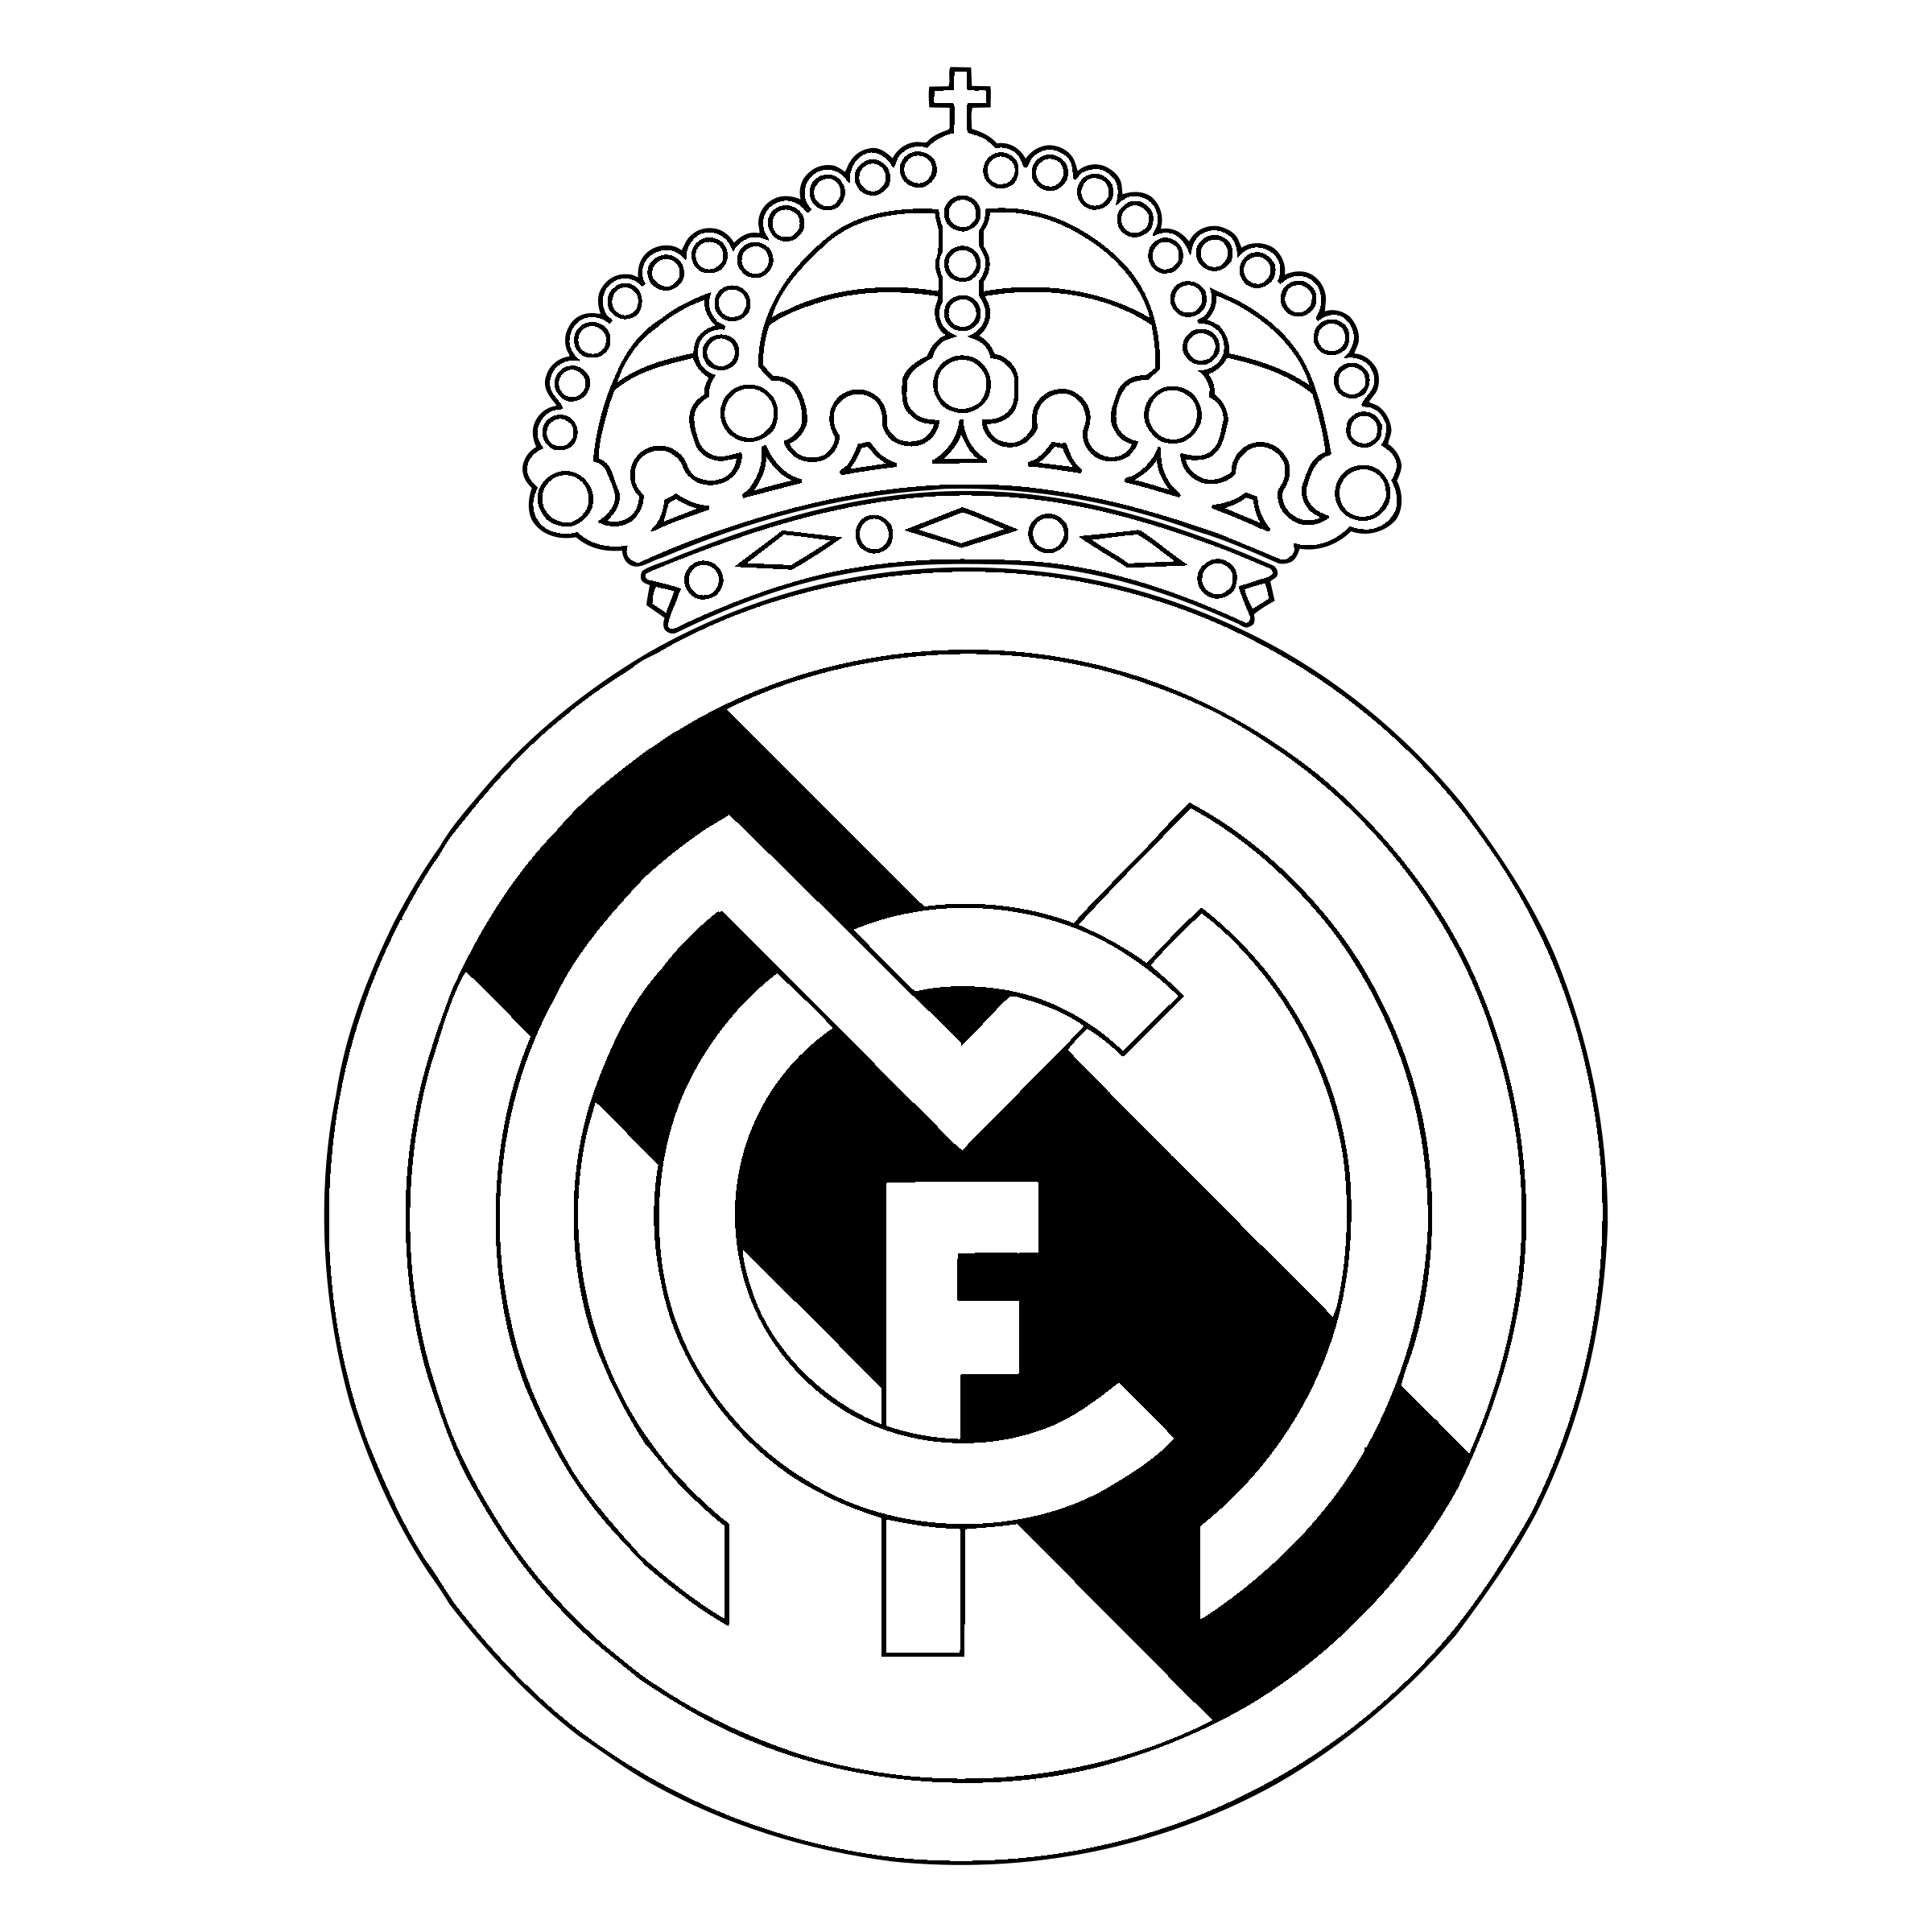 The real real logo clipart svg freeuse stock Real Madrid Cf Logo Black And White svg freeuse stock